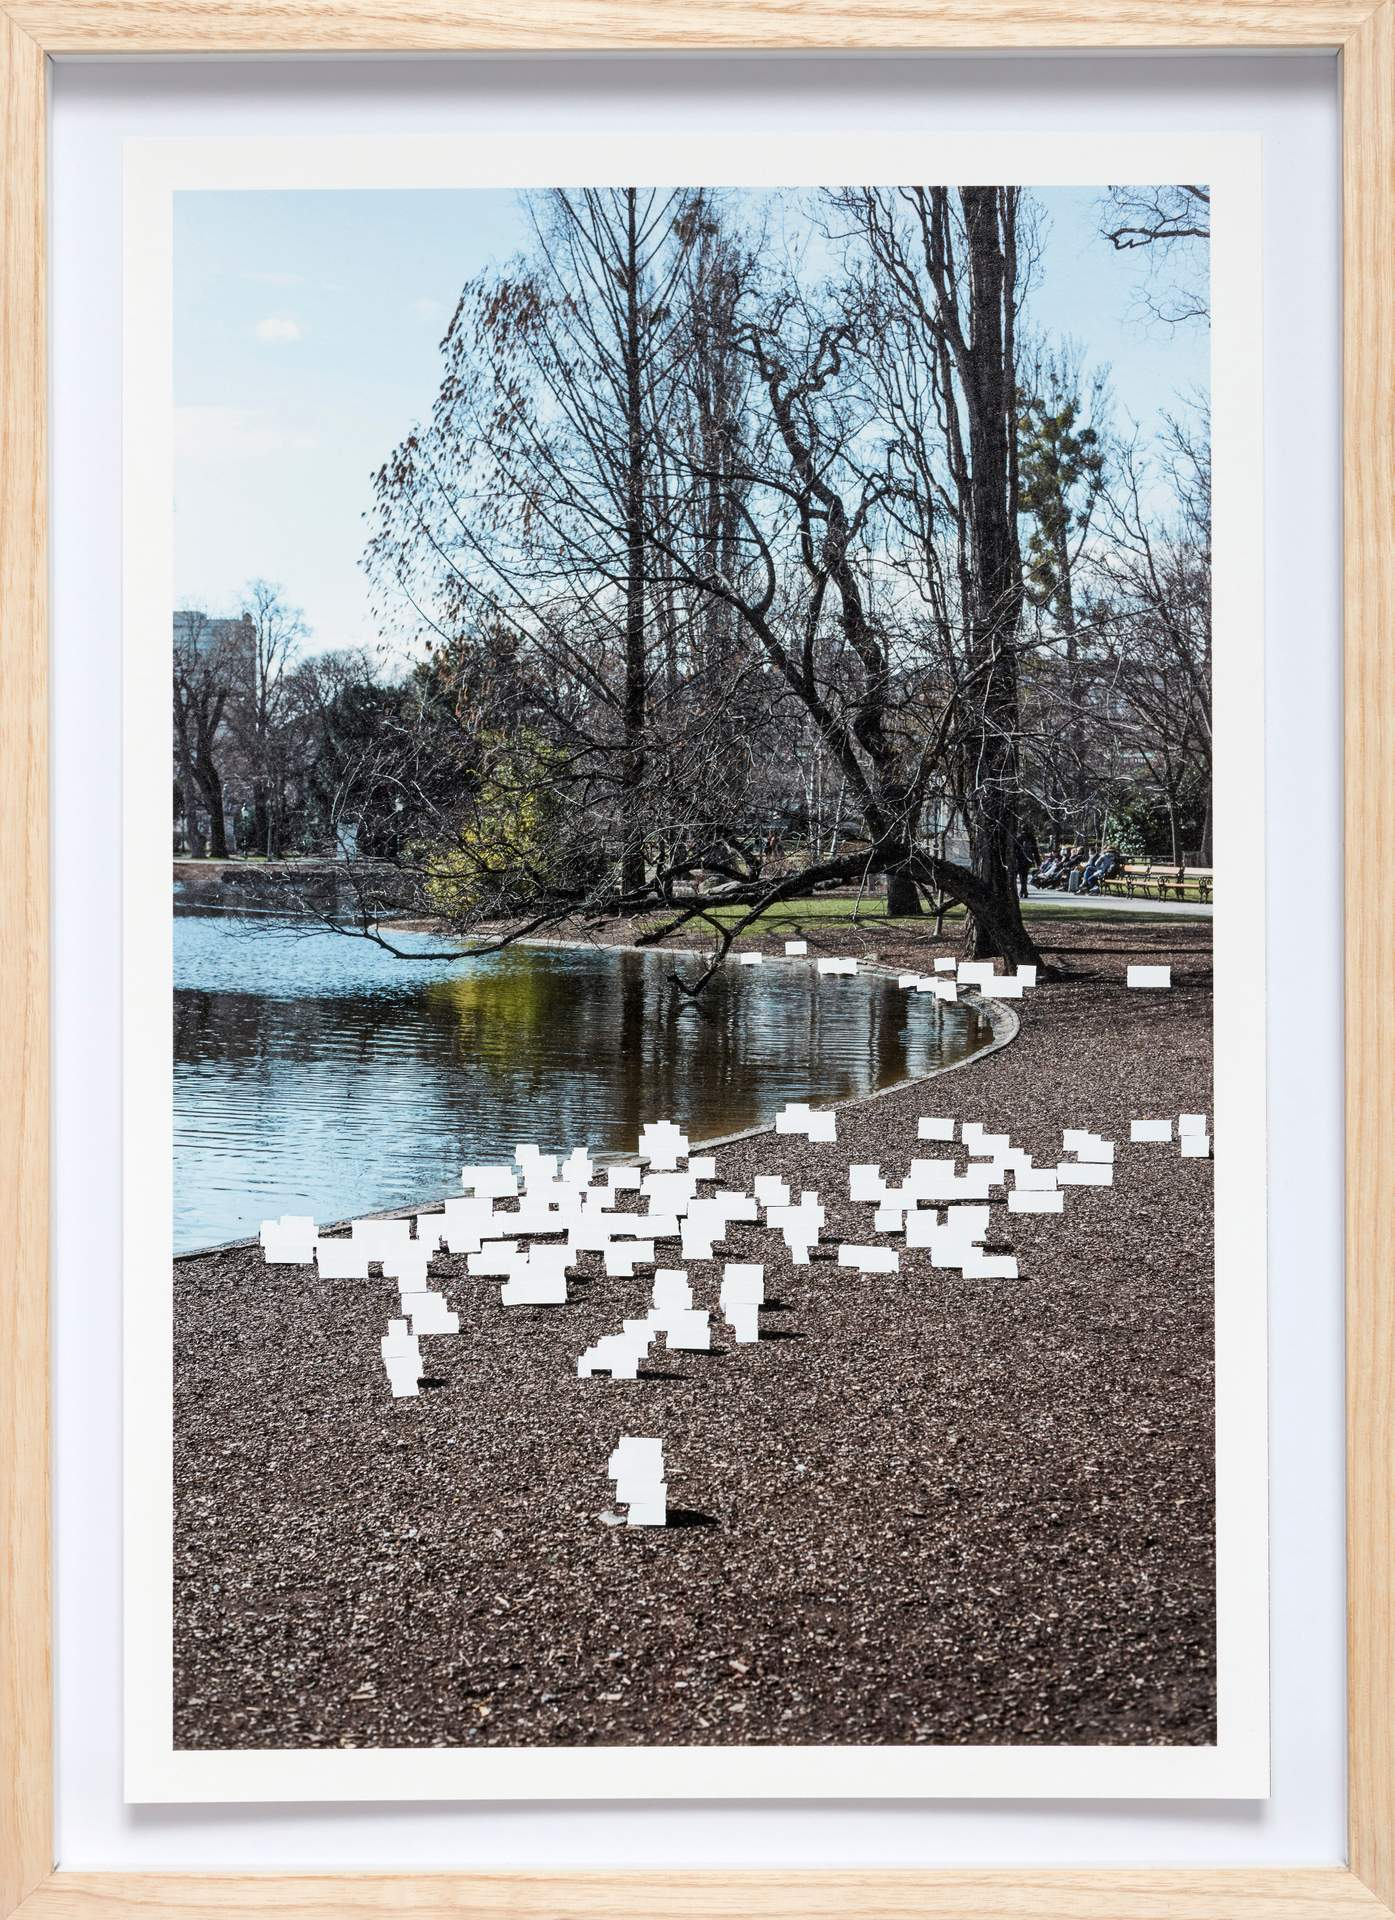 Untitled (Stadtpark) from the work Stadtluft